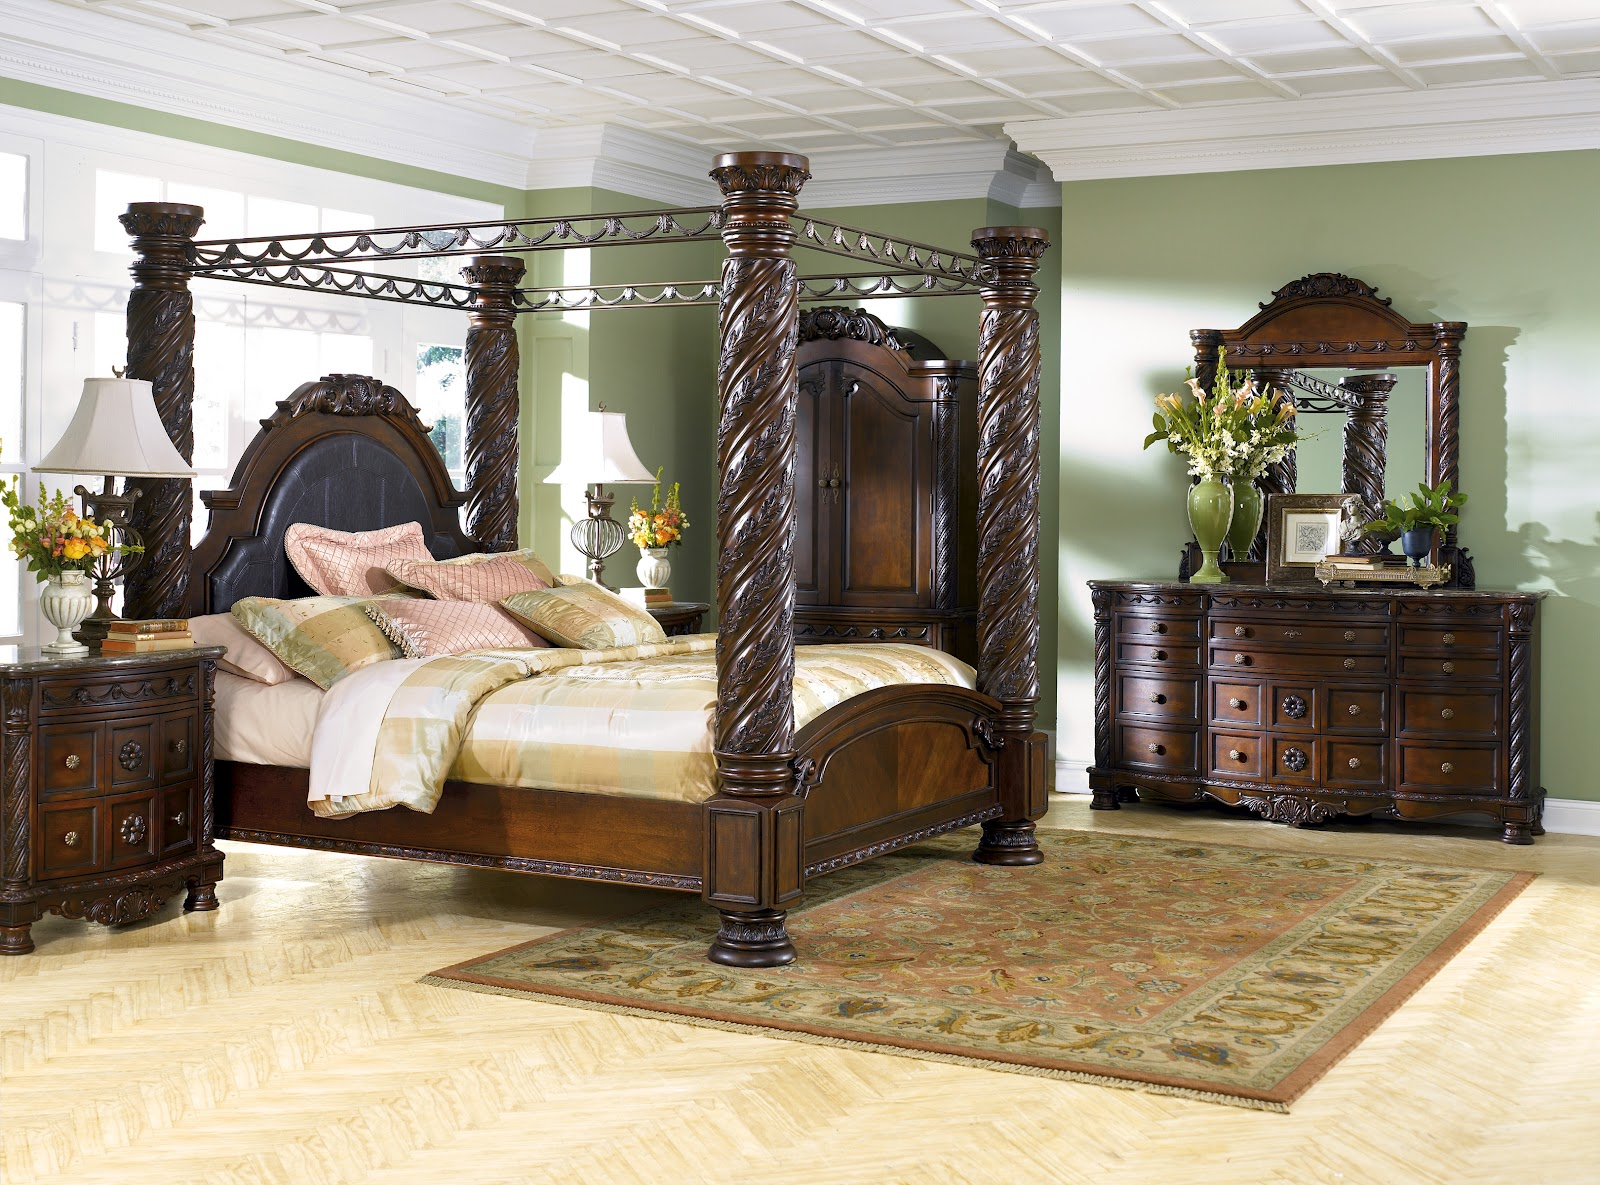 North shore bedroom set reviews buying guide north - Ashley furniture bedroom packages ...